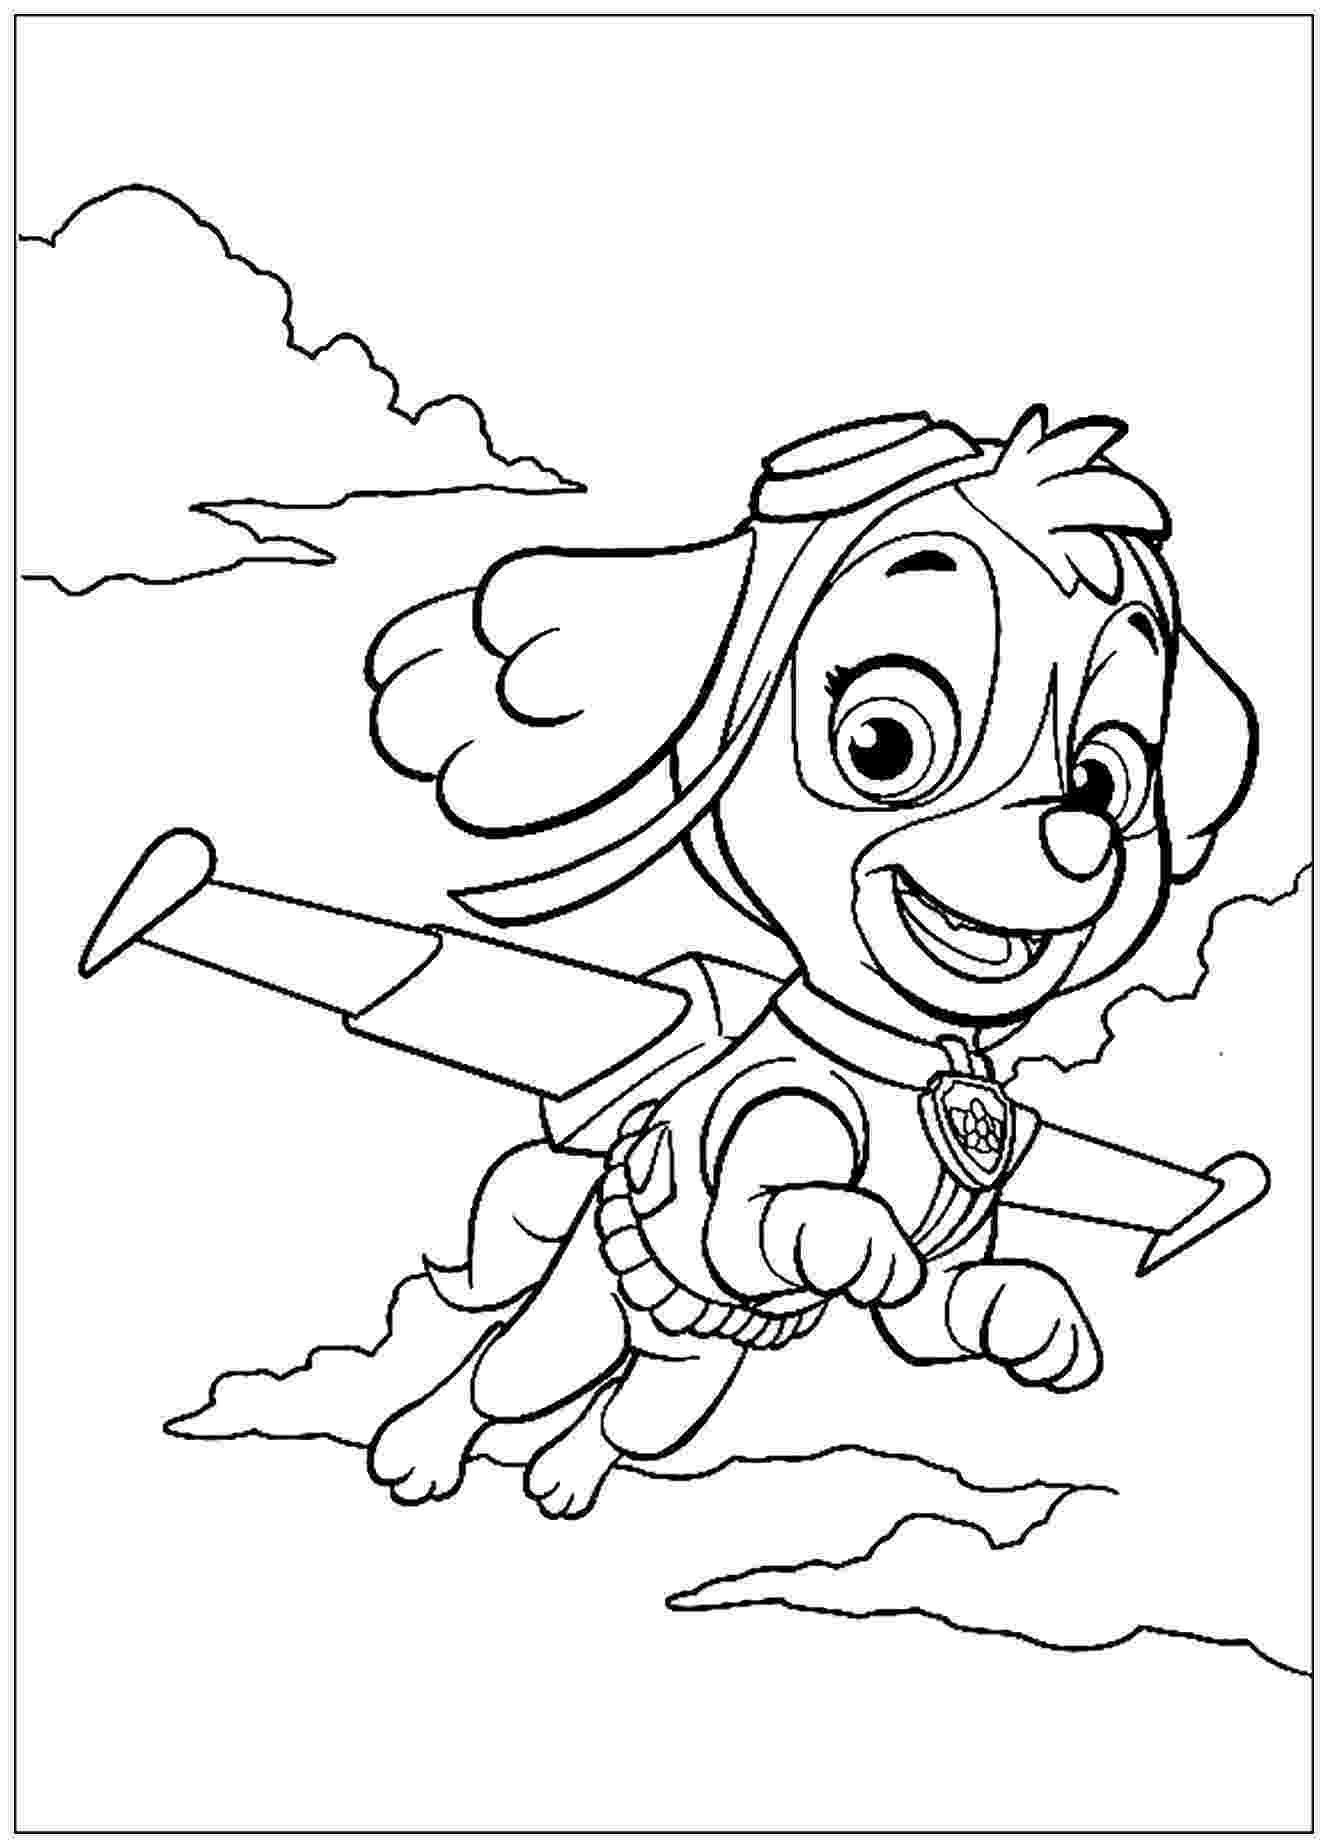 paw patrol coloriage paw patrol to color for kids paw patrol kids coloring pages paw patrol coloriage